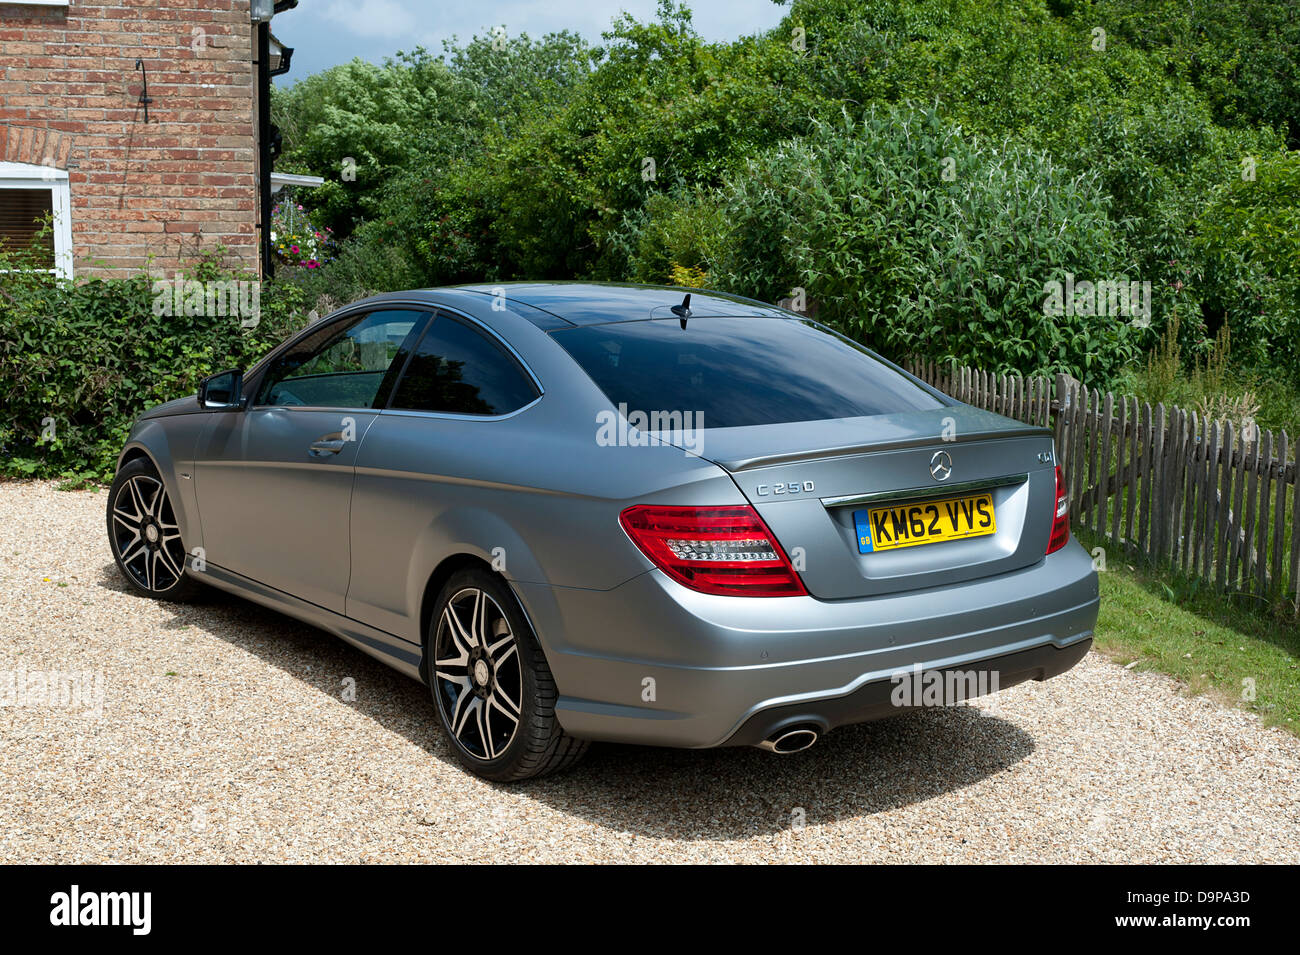 2013 mercedes benz c250 cdi coupe amg sport stock photo royalty free image 57653889 alamy. Black Bedroom Furniture Sets. Home Design Ideas